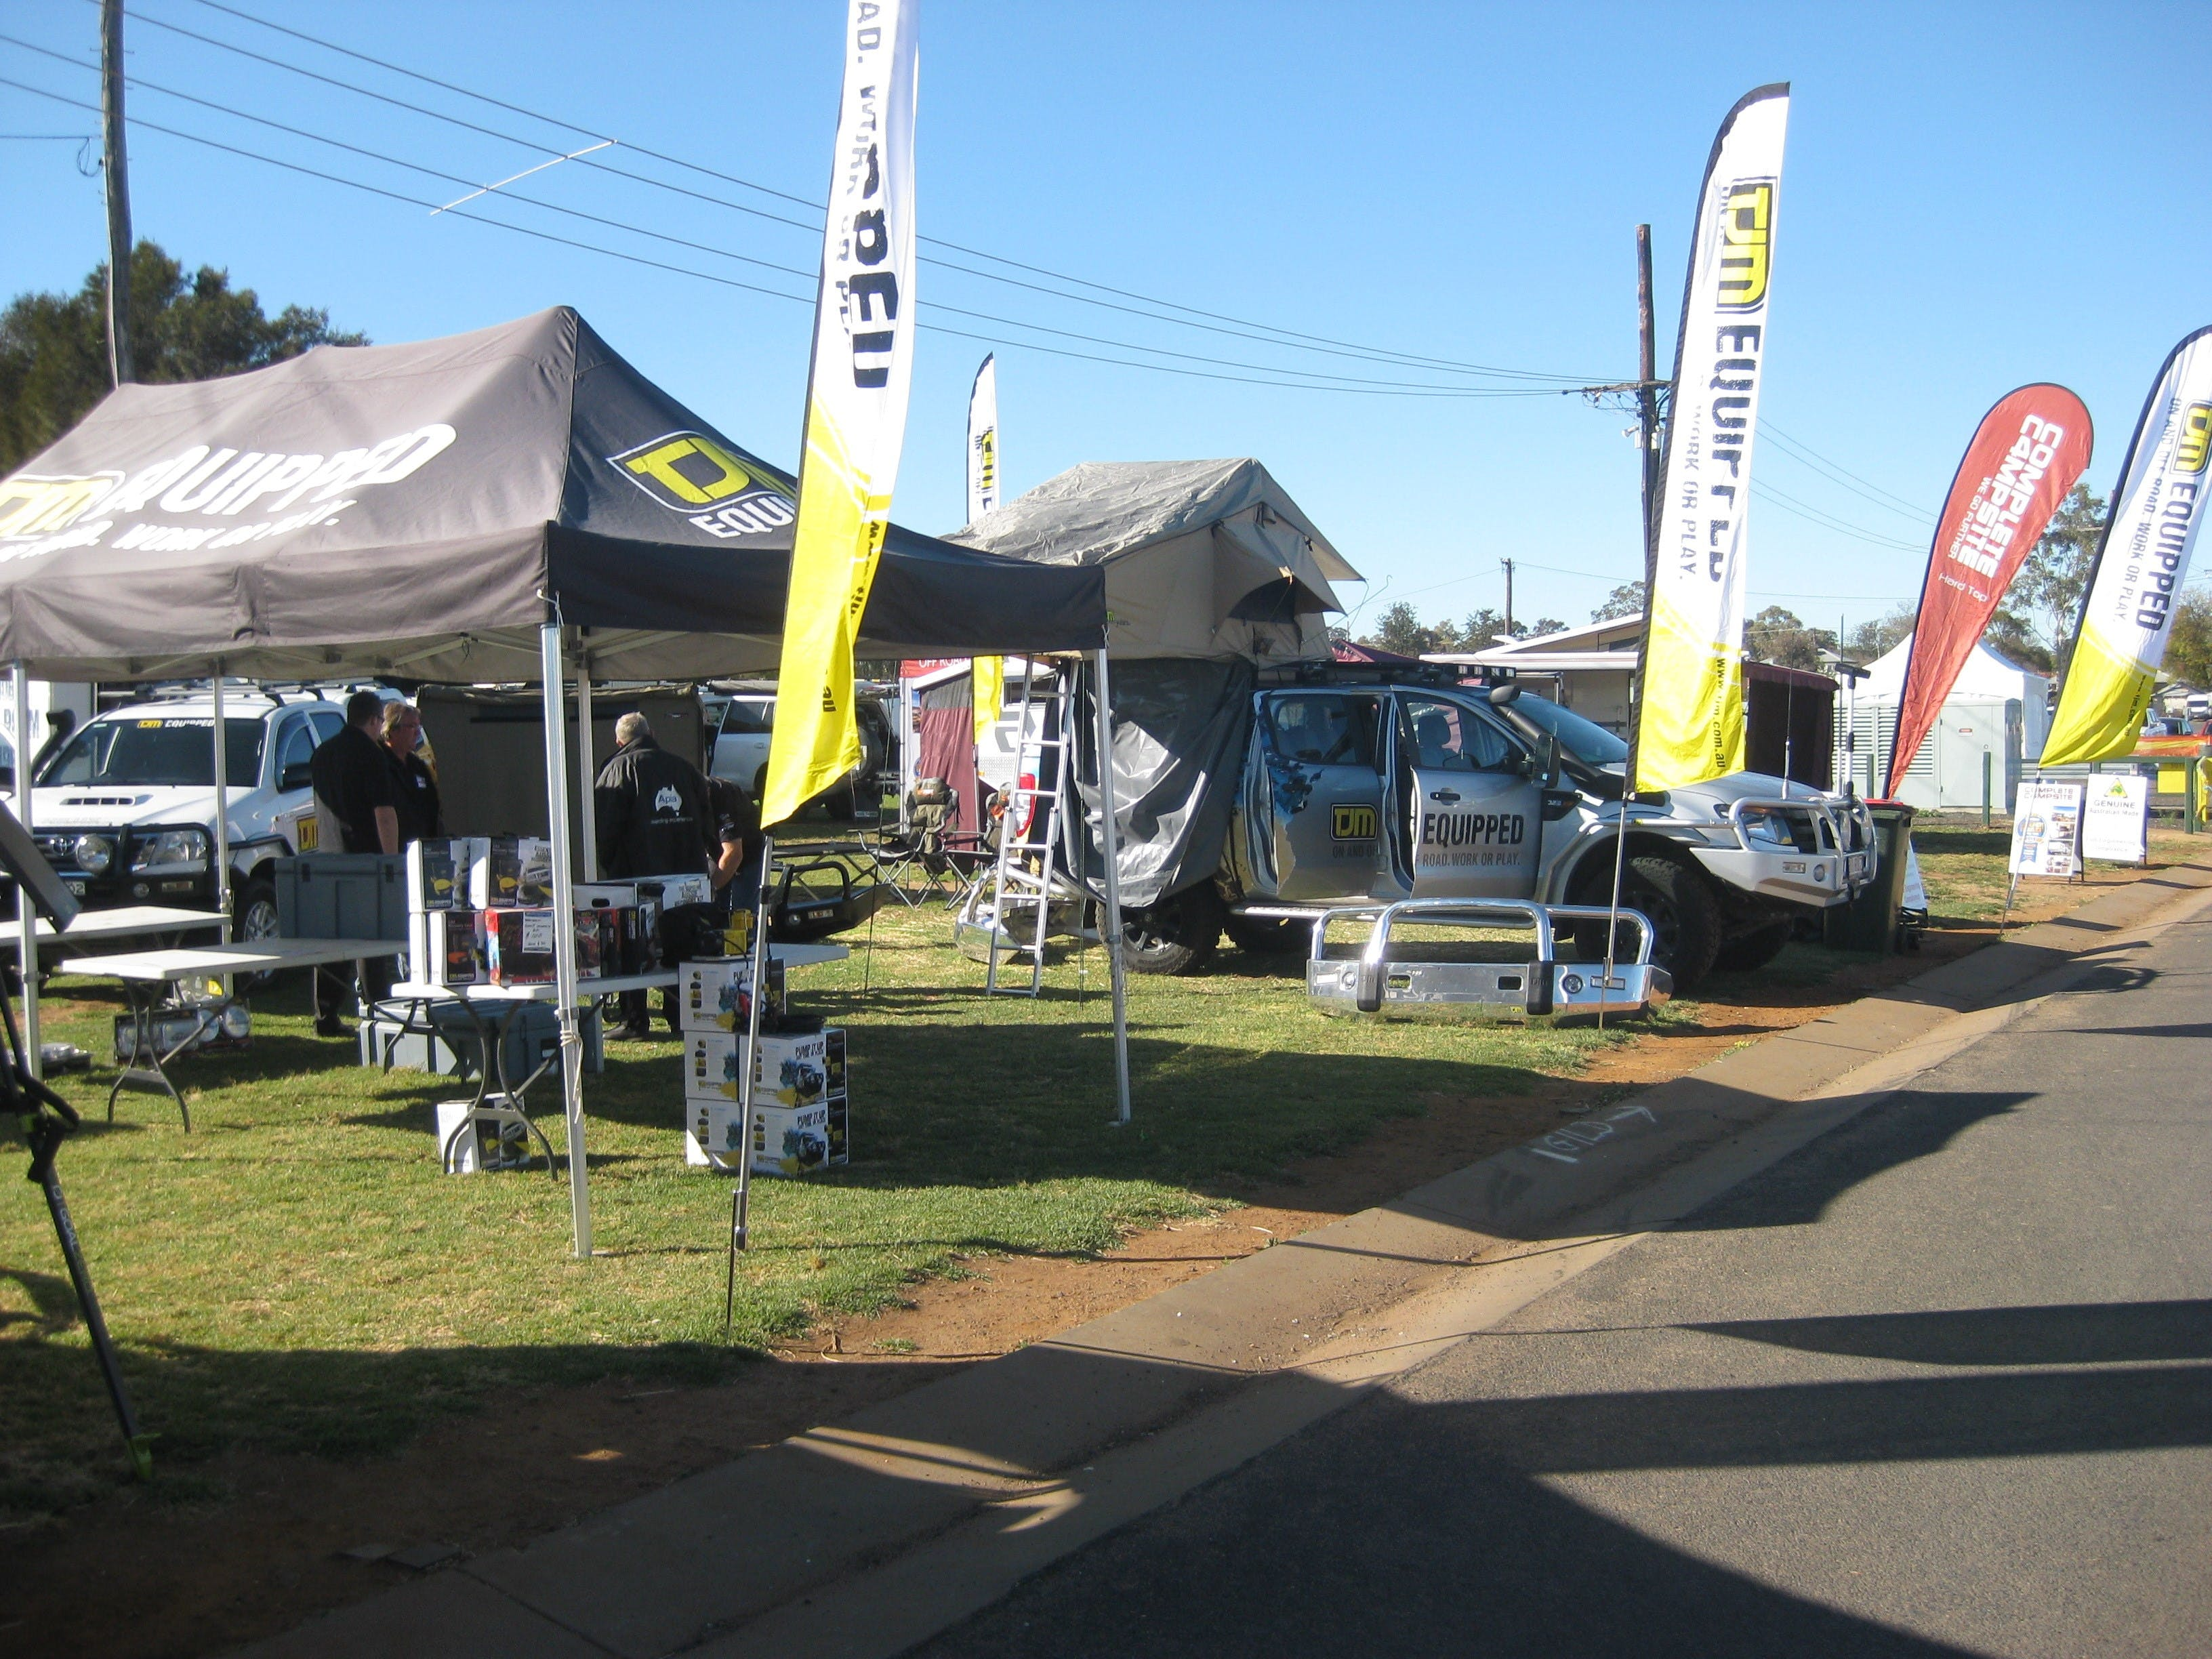 Orana Caravan Camping 4WD Fish and Boat Show - Carnarvon Accommodation